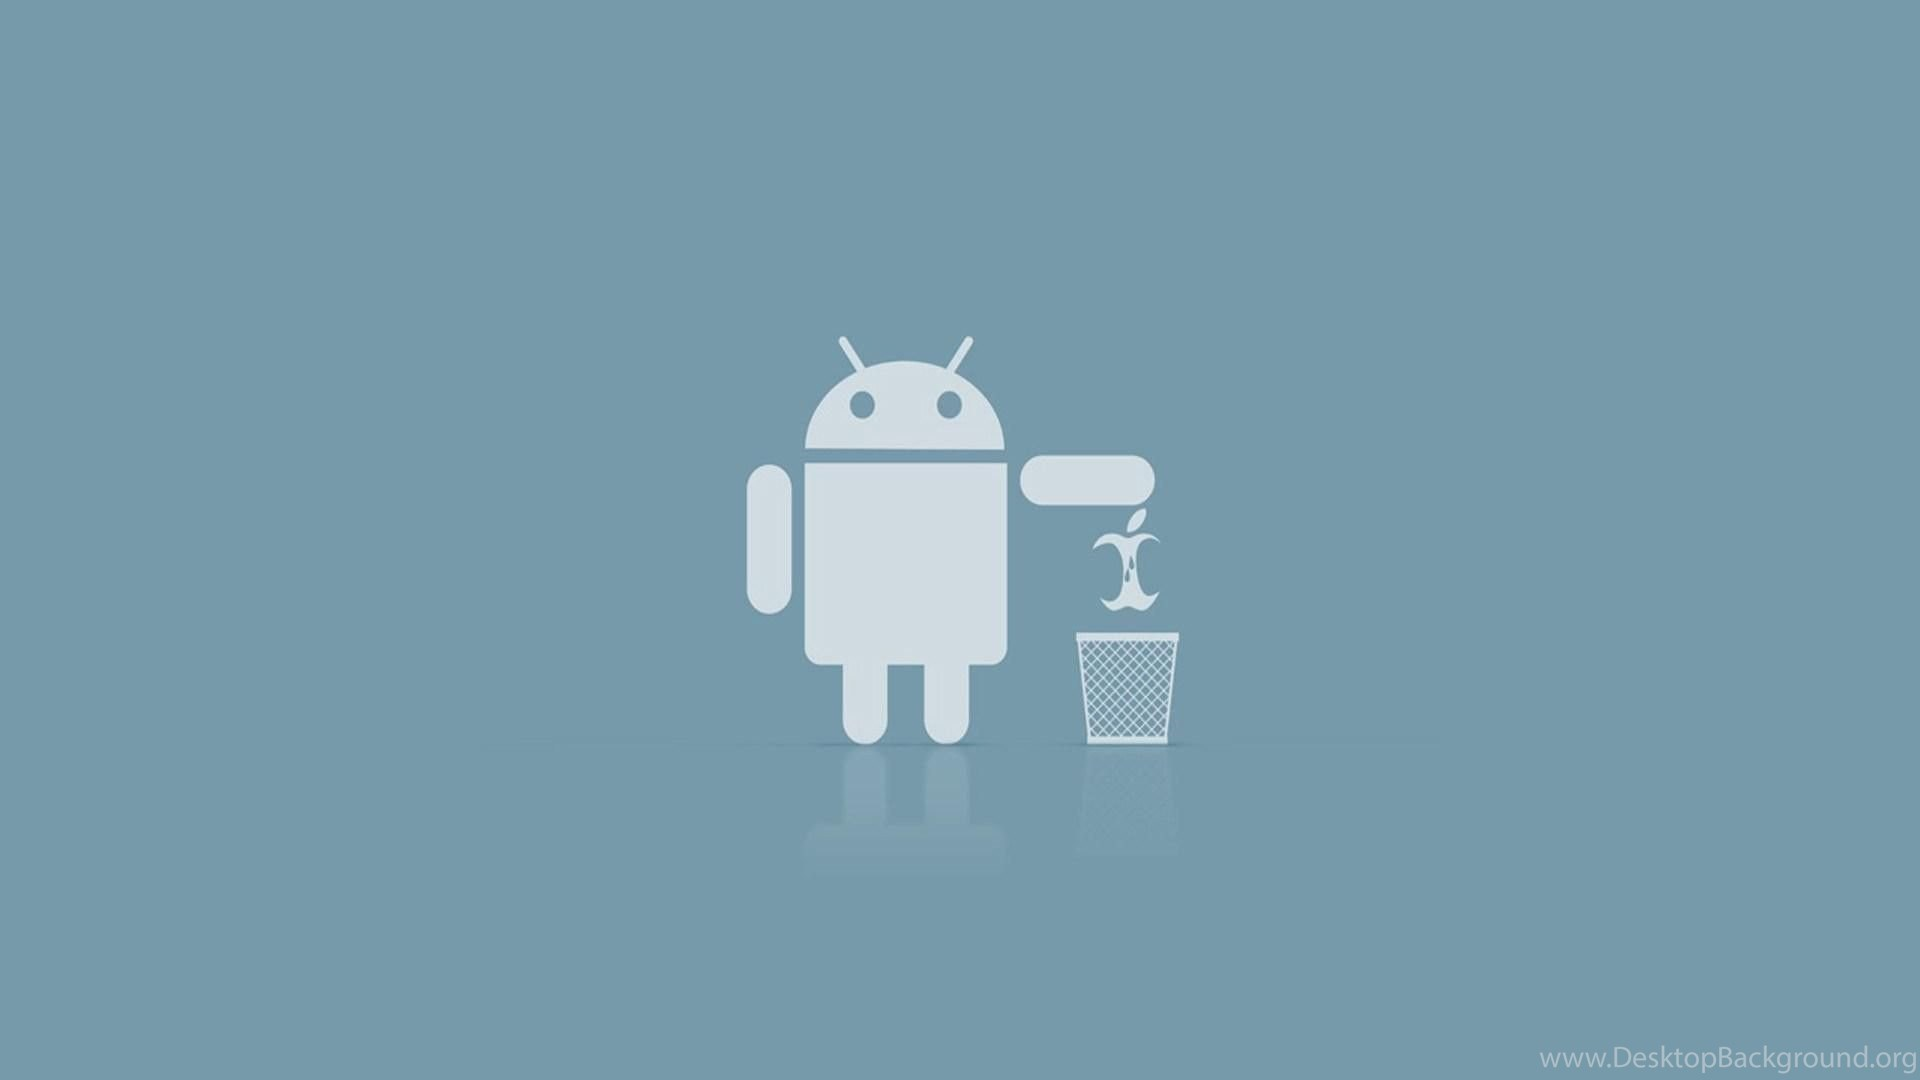 android funny logo apple hd wallpapers new hd wallpapers desktop